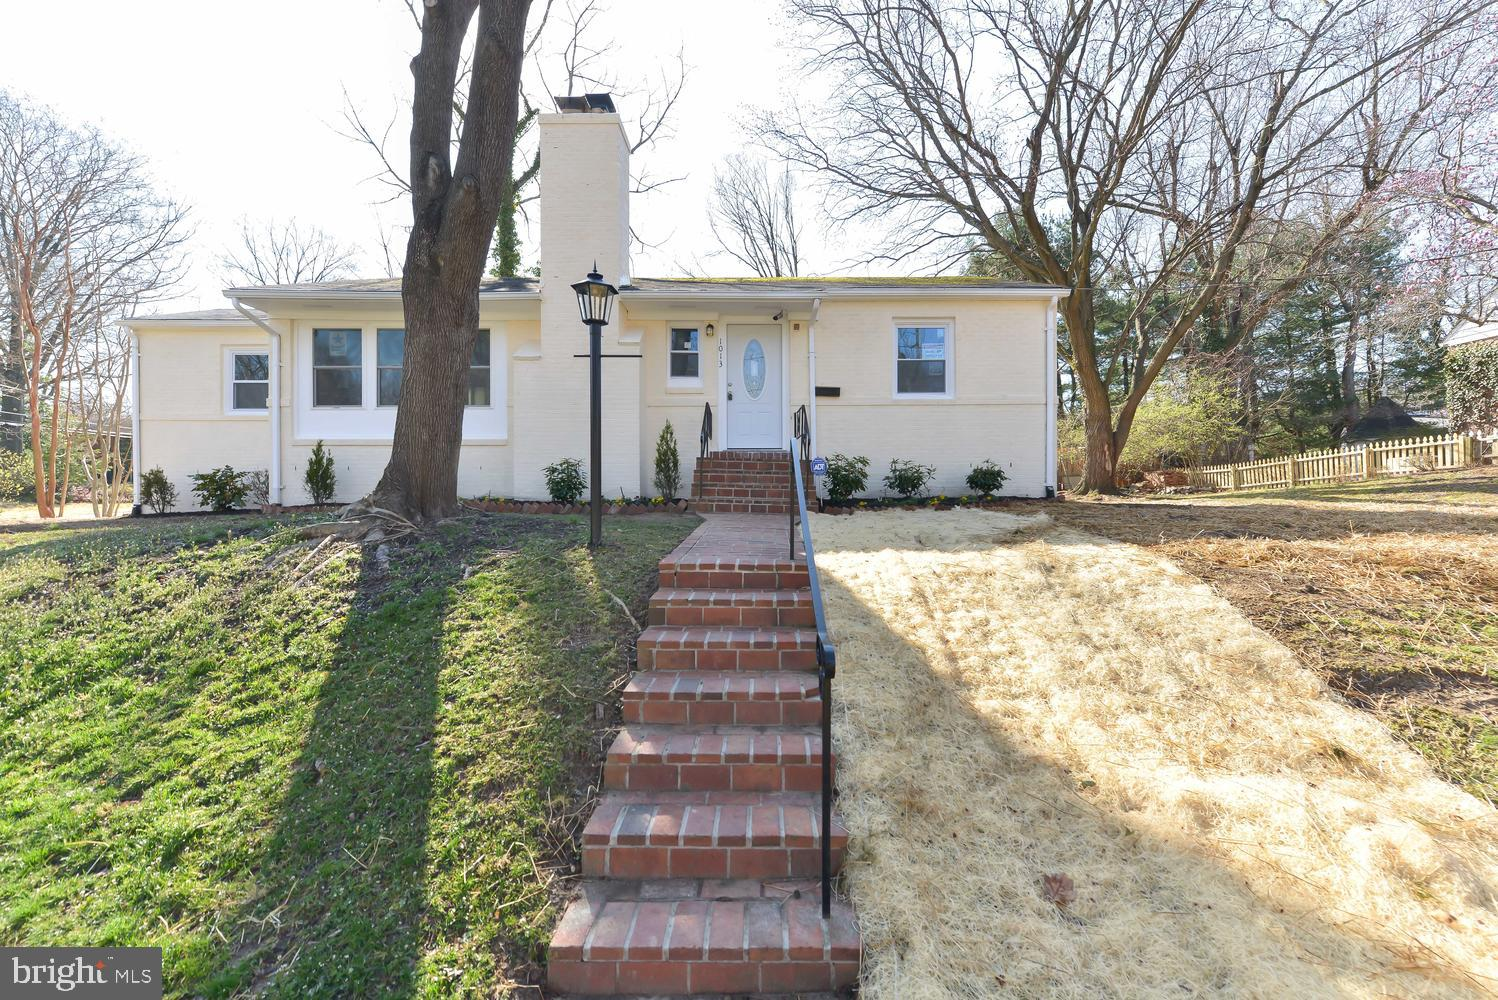 1013 W NOLCREST DRIVE, SILVER SPRING, MD 20903